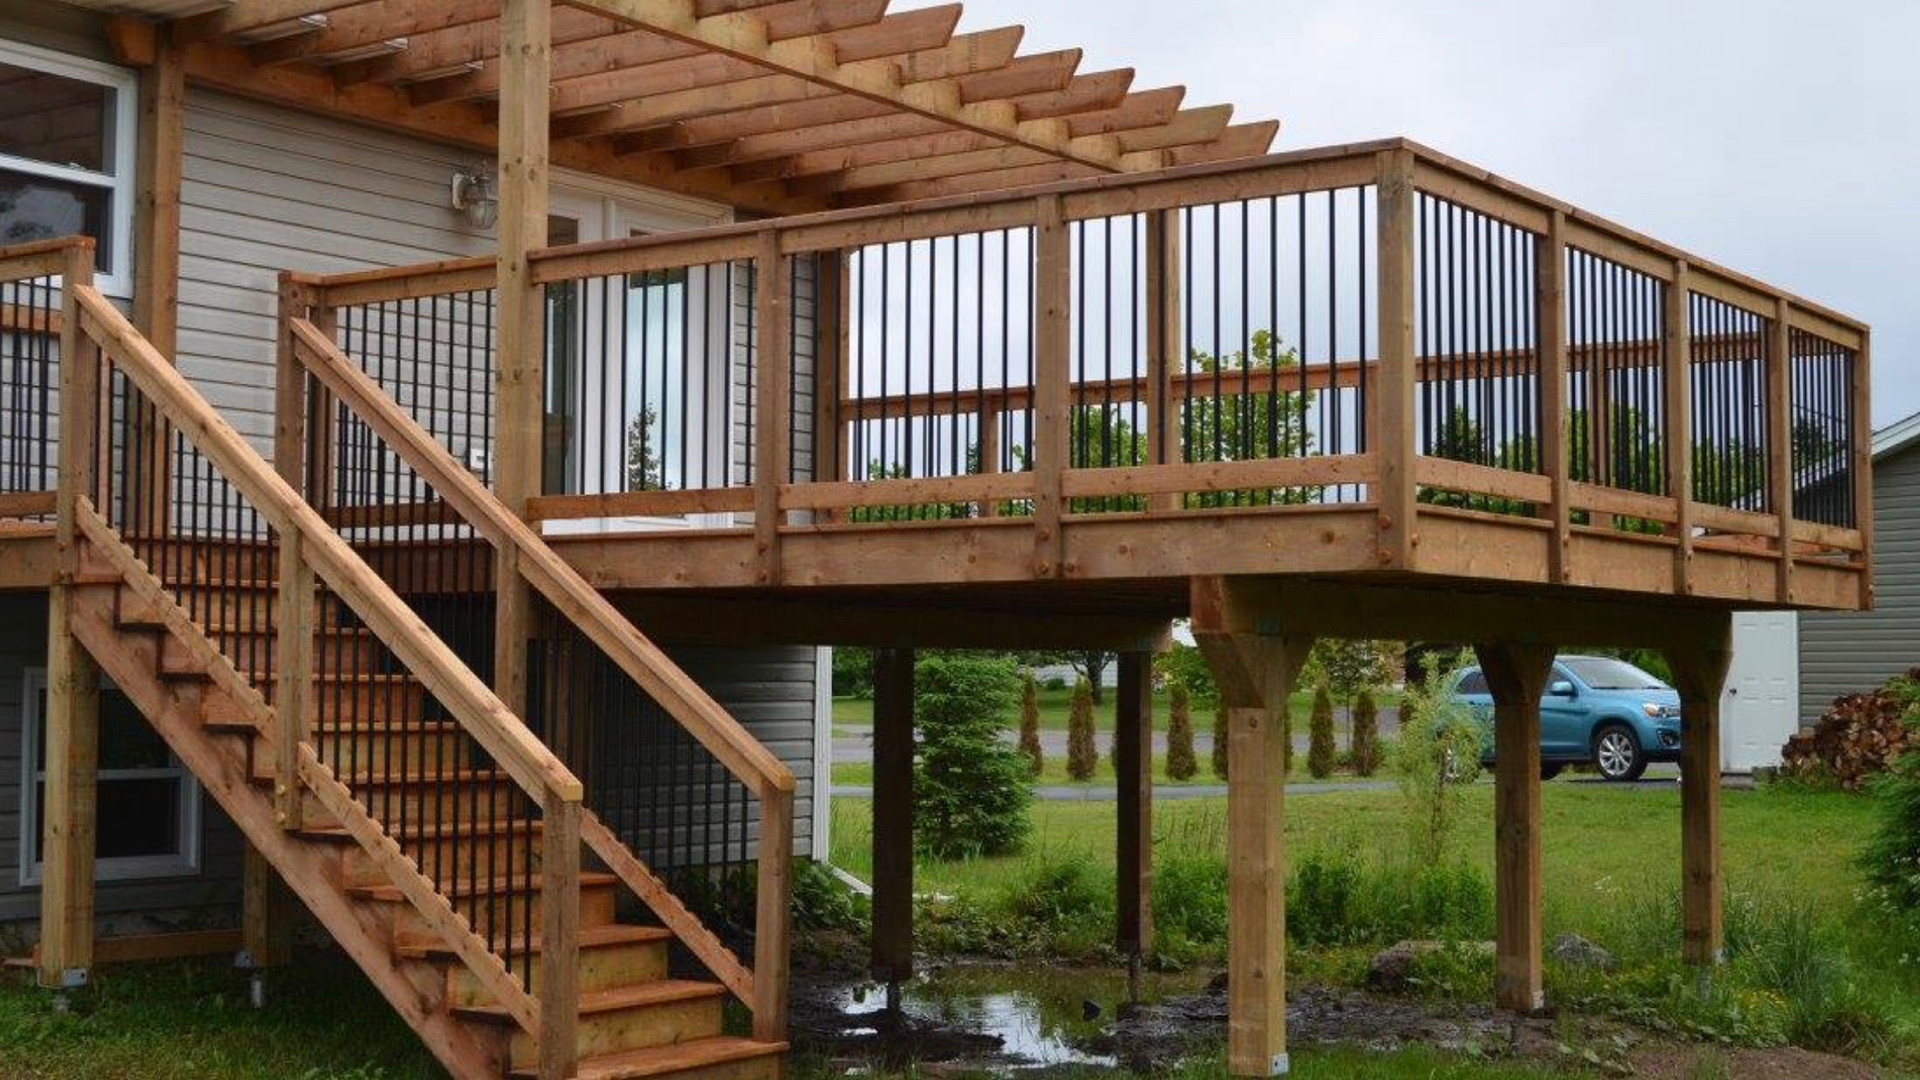 16x20 deck with pergola on helico piles with mortise and tenon joints.